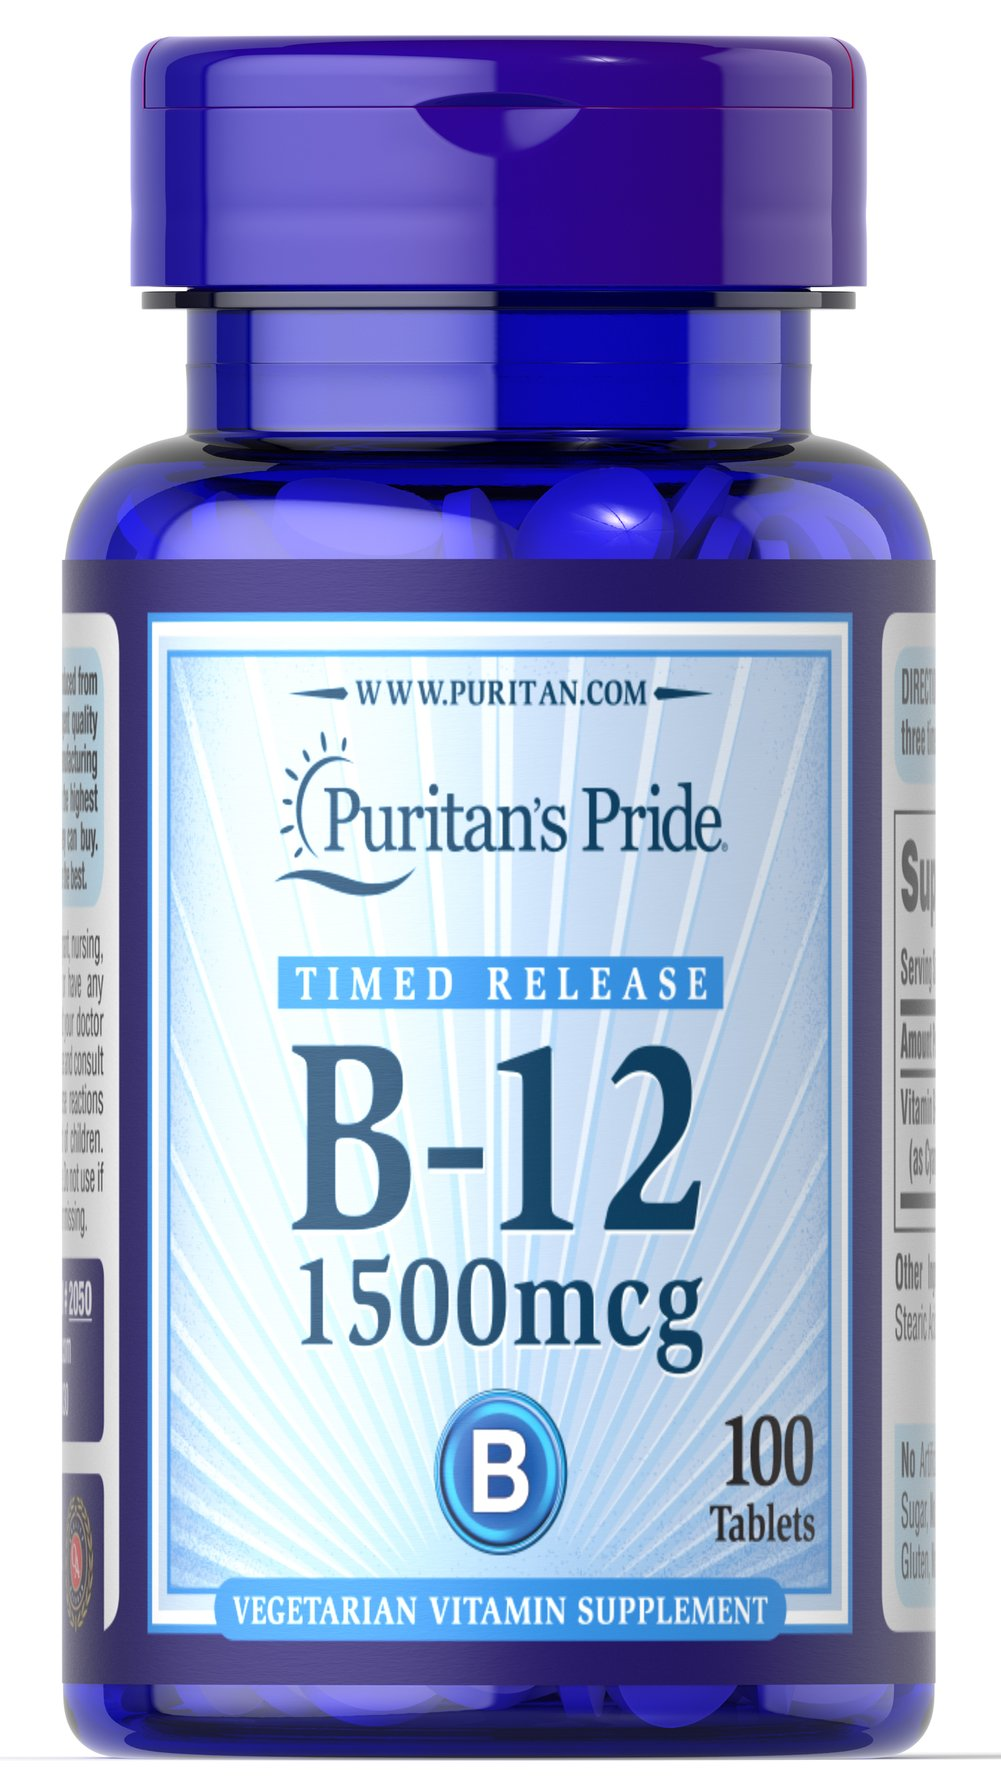 Vitamin B-12 1500 mcg Timed Release <p>Being your best just got easier! As you may know, the B Vitamins play many important roles in the body, including energy metabolism.** Specifically, the vitamin known as B-12 helps maintain proper metabolic functioning and circulatory health, and contributes to the health of the nervous system.** It also aids in normal development and the regeneration of red blood cells.**</p> 100 Tablets 1500 mcg $14.39